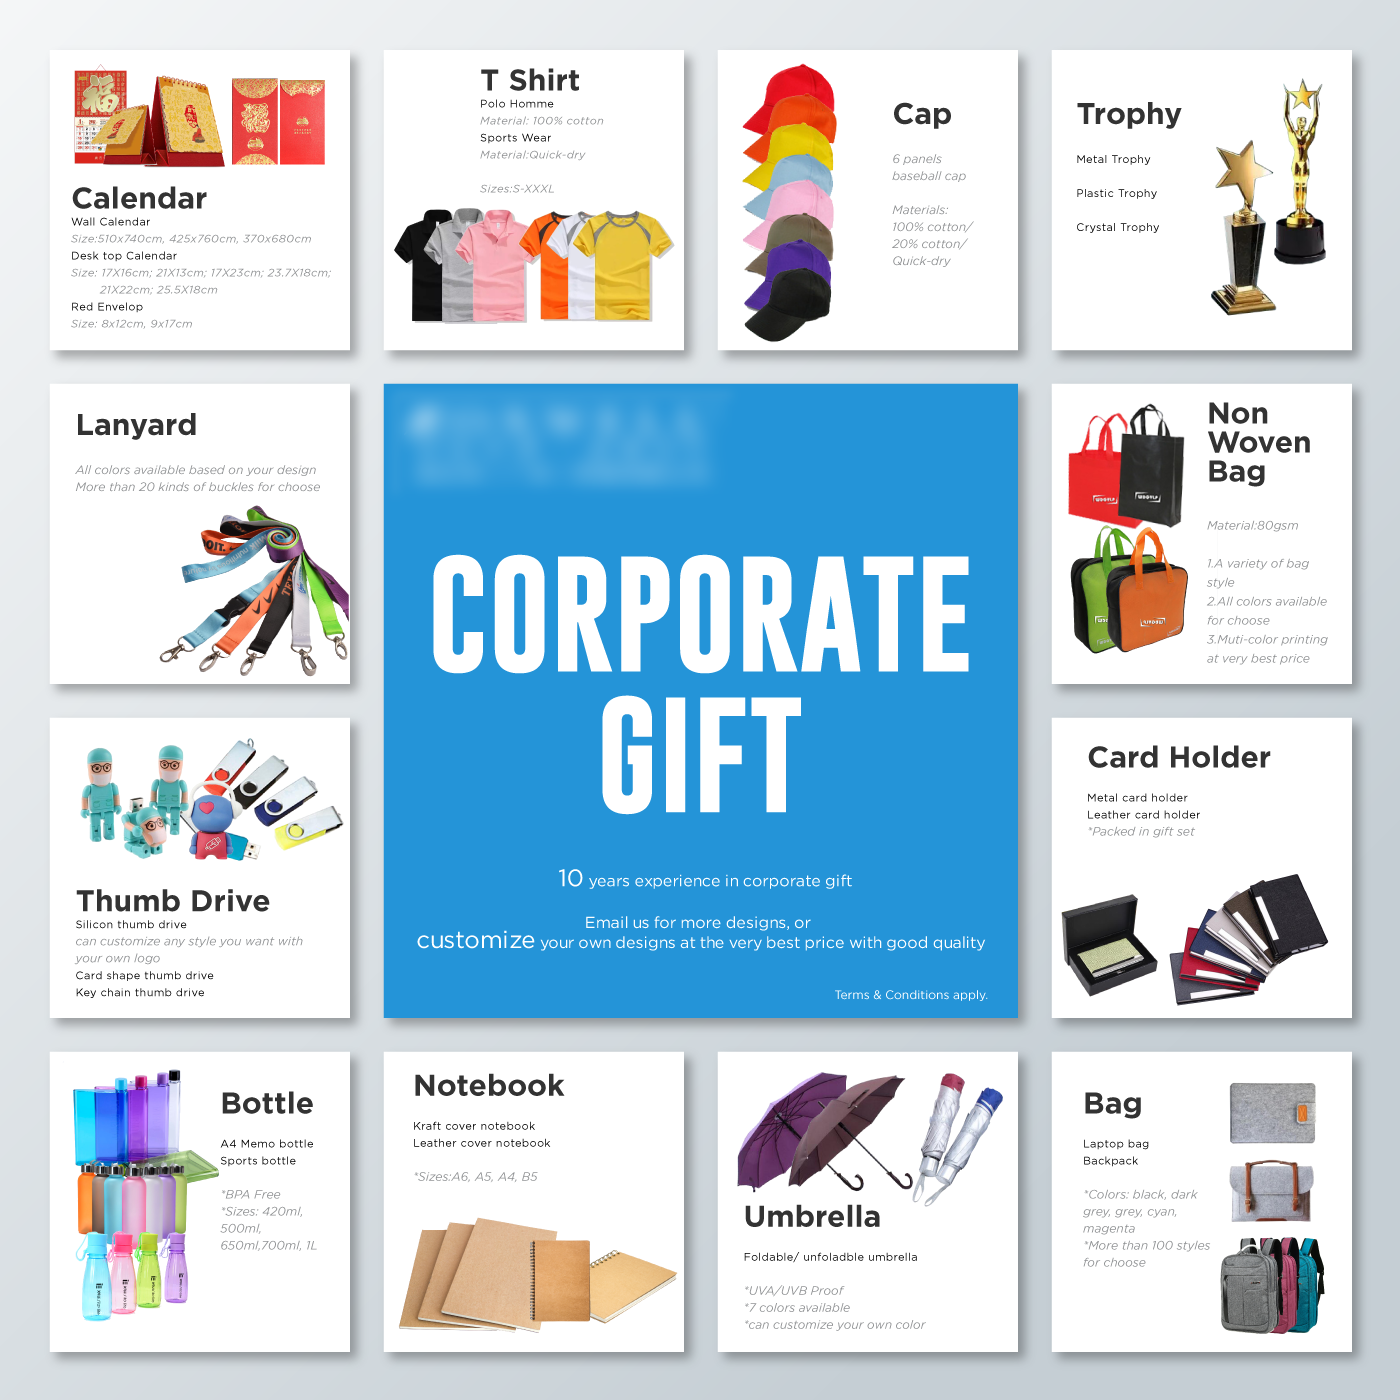 corporate-gift-poster-for-email-content.